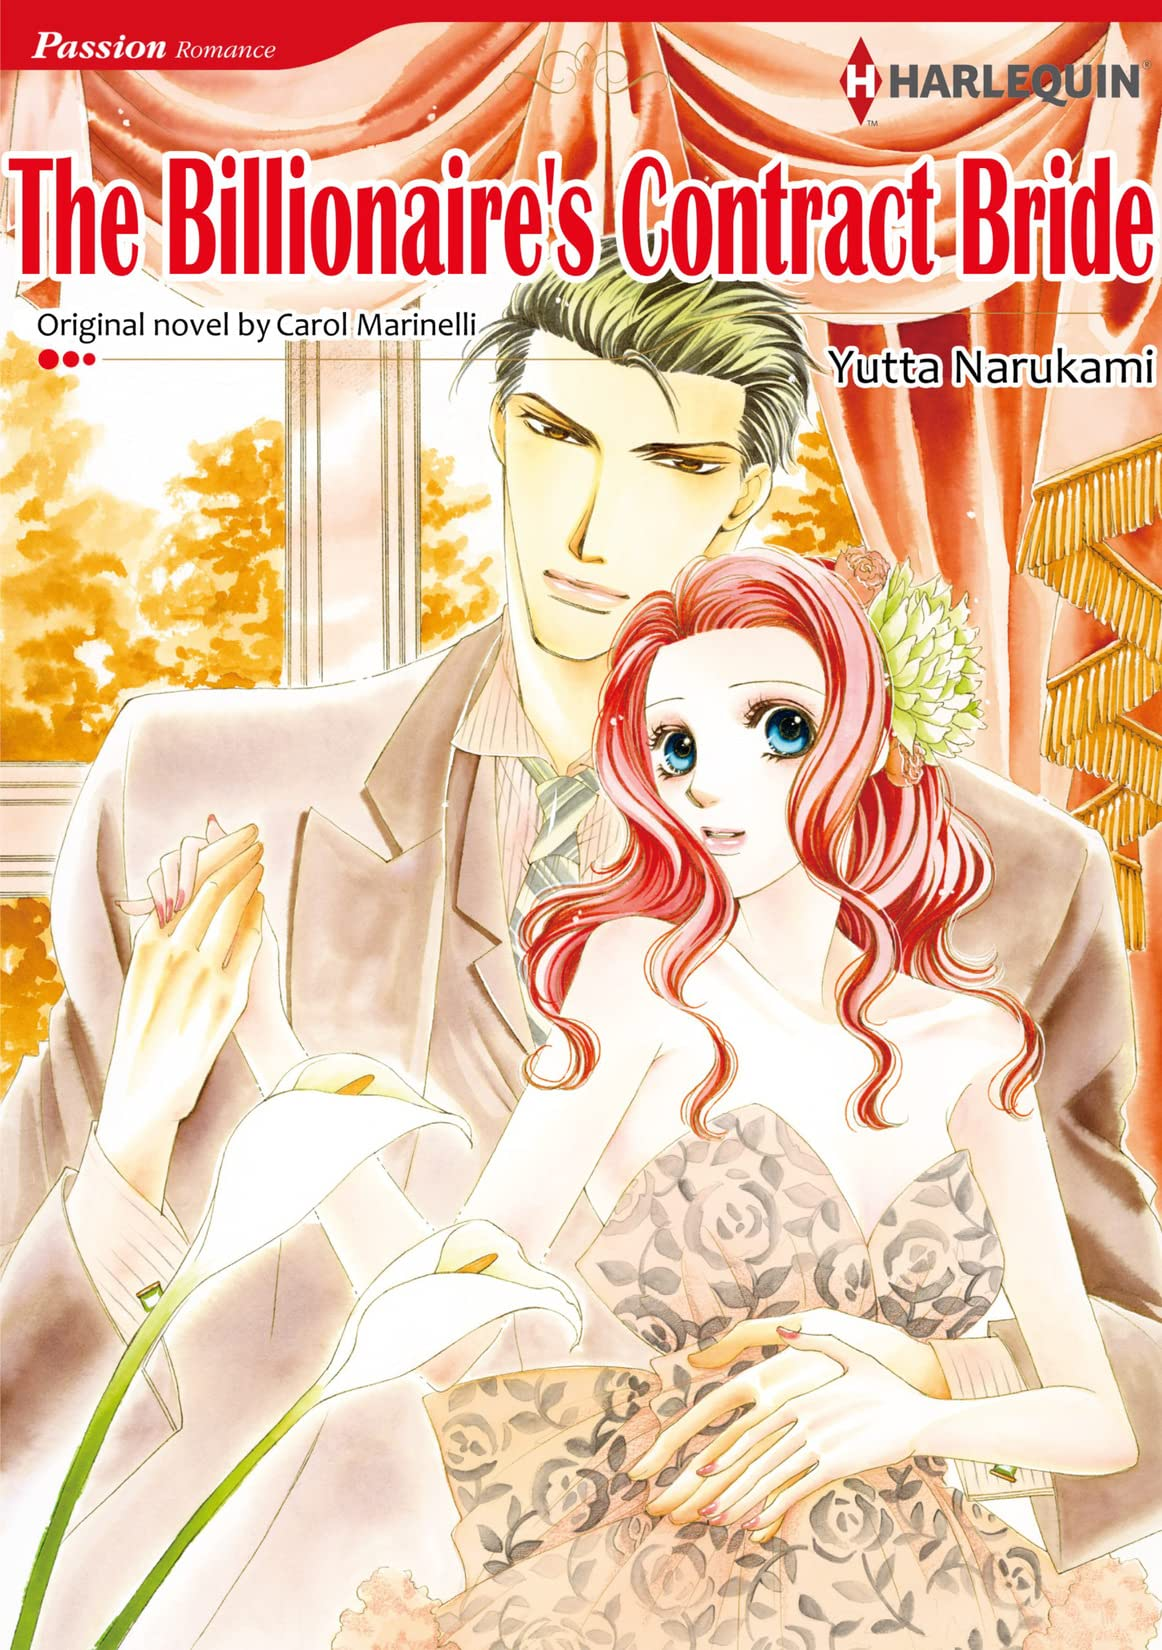 THE BILLIONAIRE'S CONTRACT BRIDE